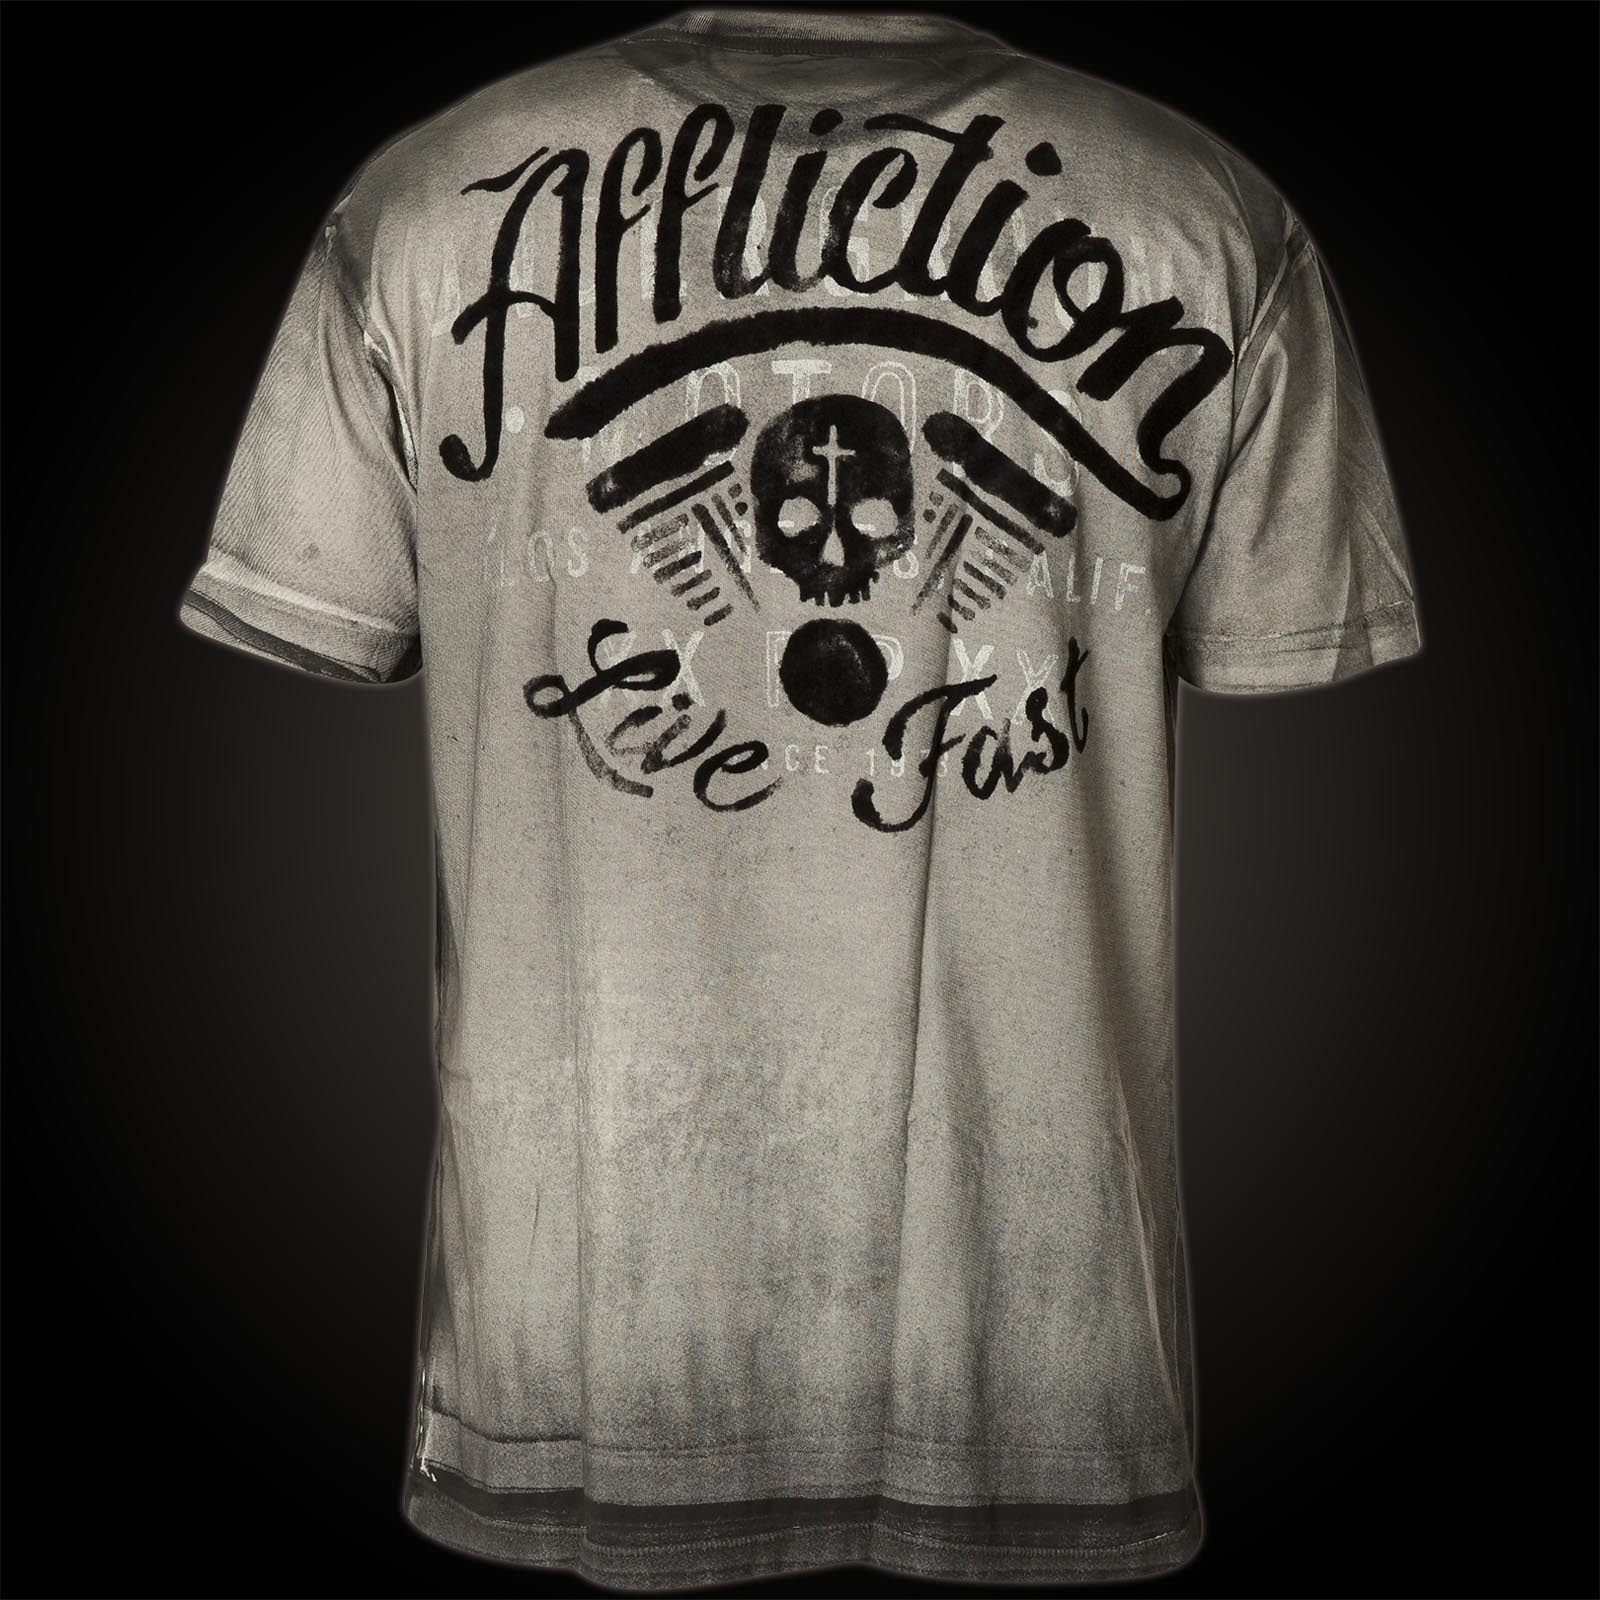 affliction t shirt corpus christi ii print featuring a skull